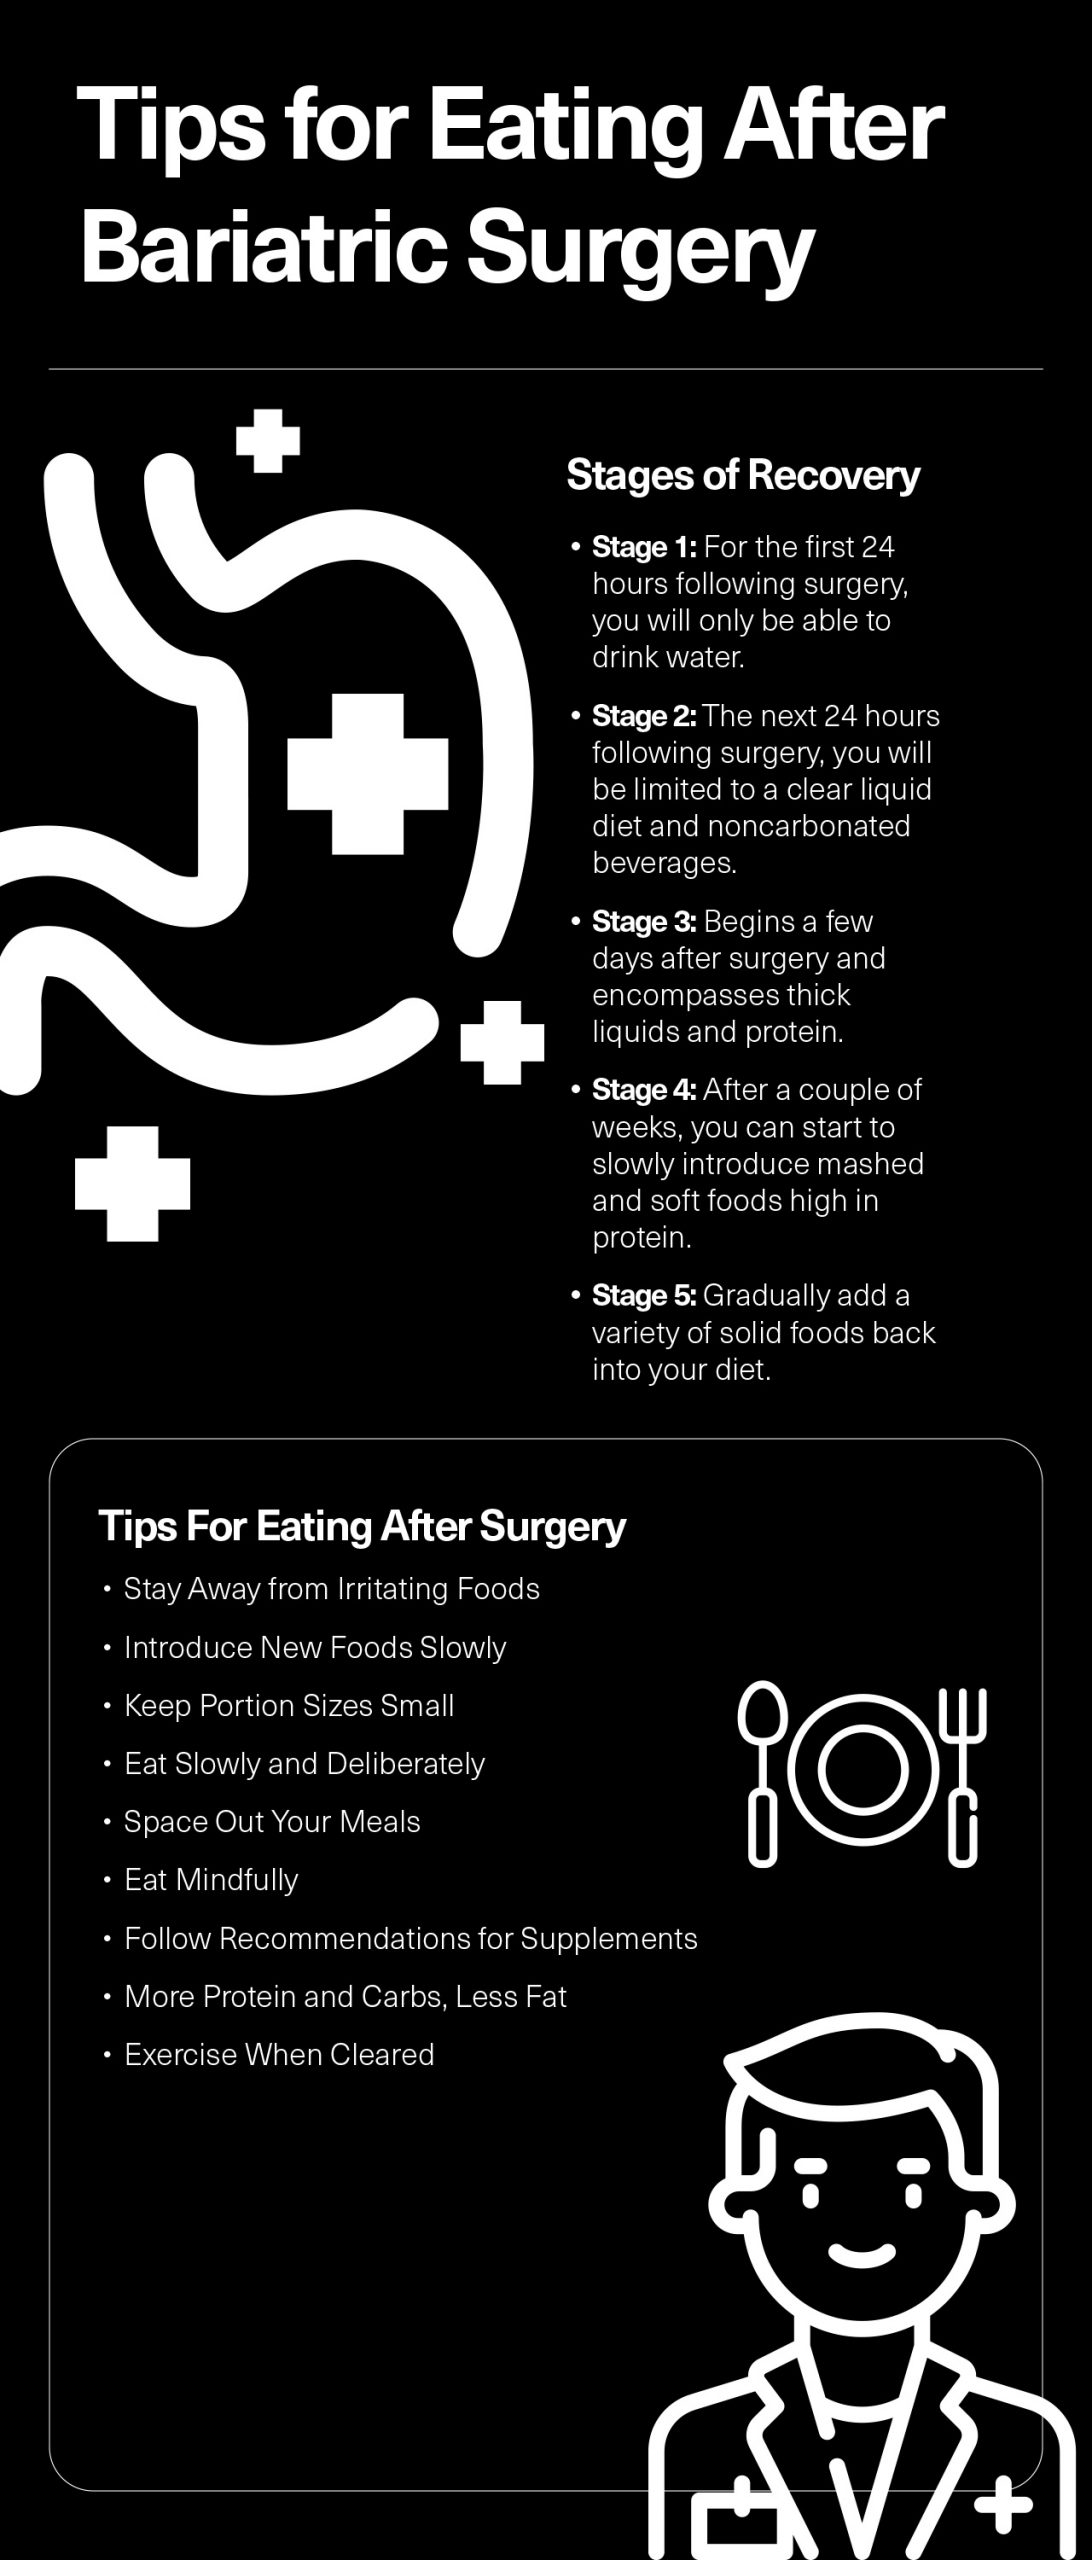 Tips for Eating After Bariatric Surgery